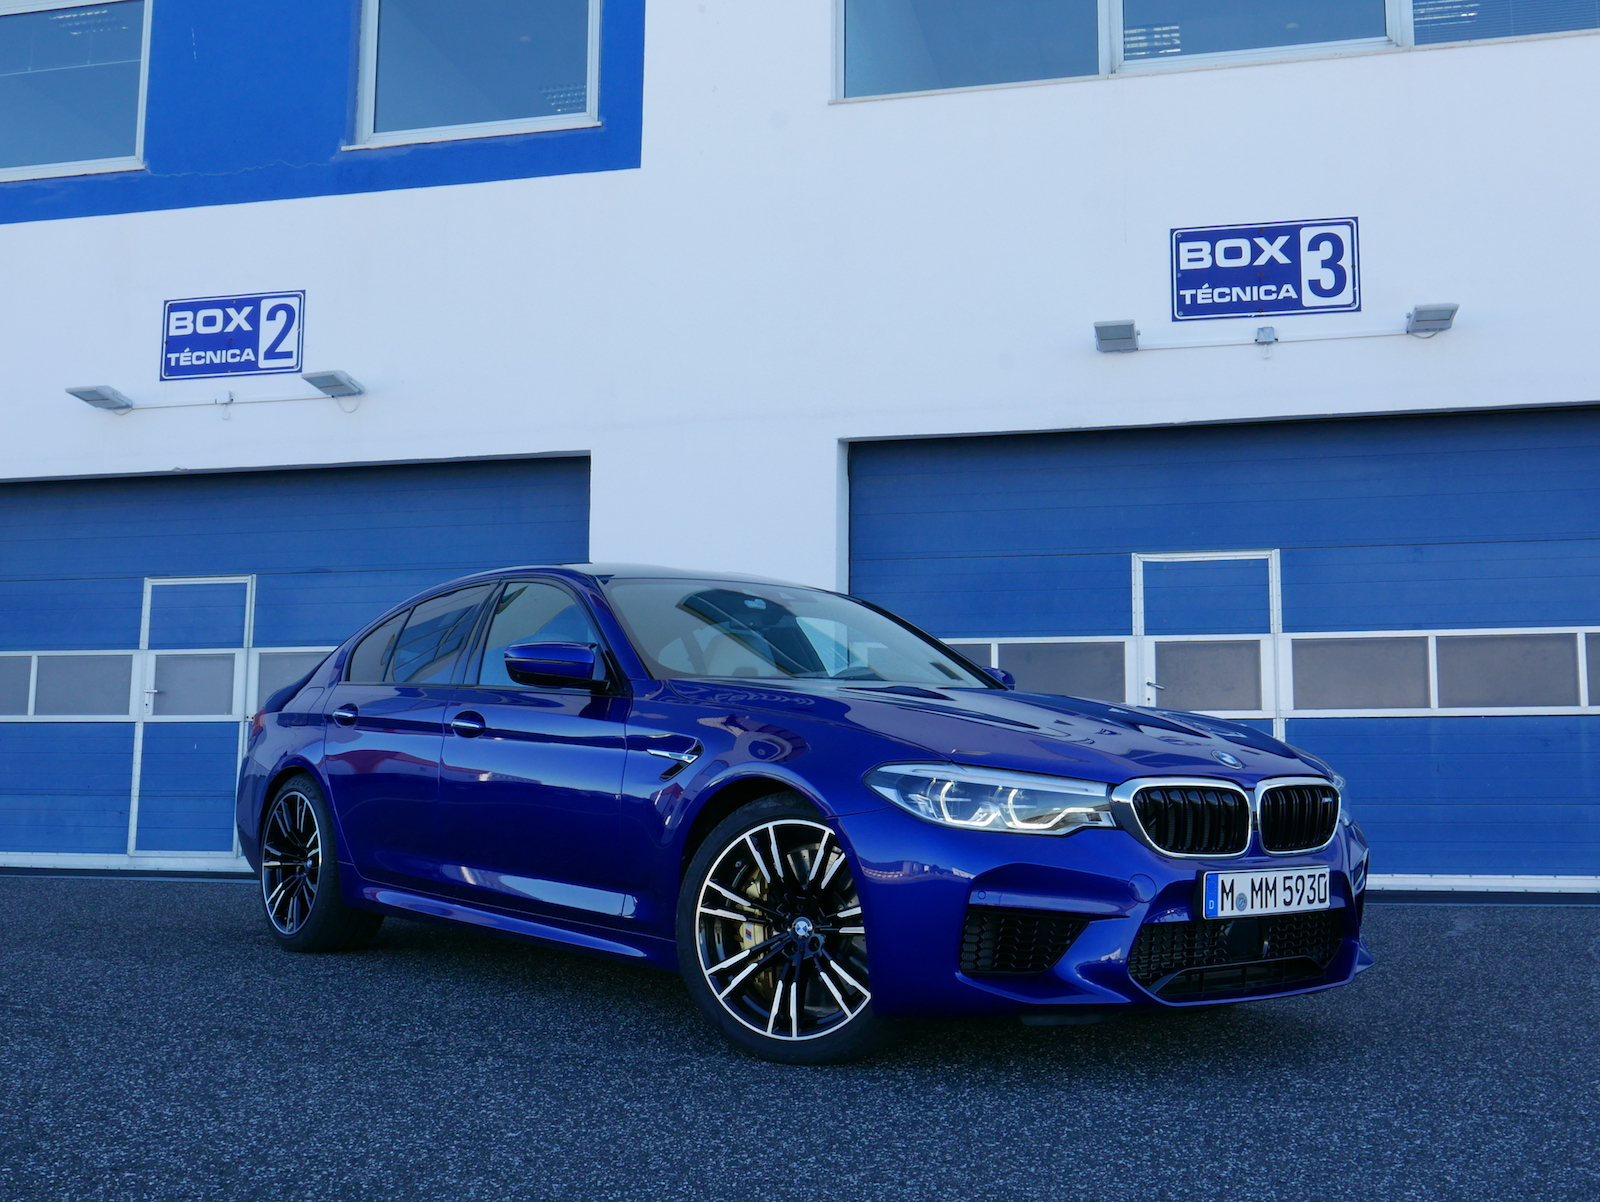 Bmw M5 0 60 >> 2018 BMW M5 Review and First Drive - AutoGuide.com